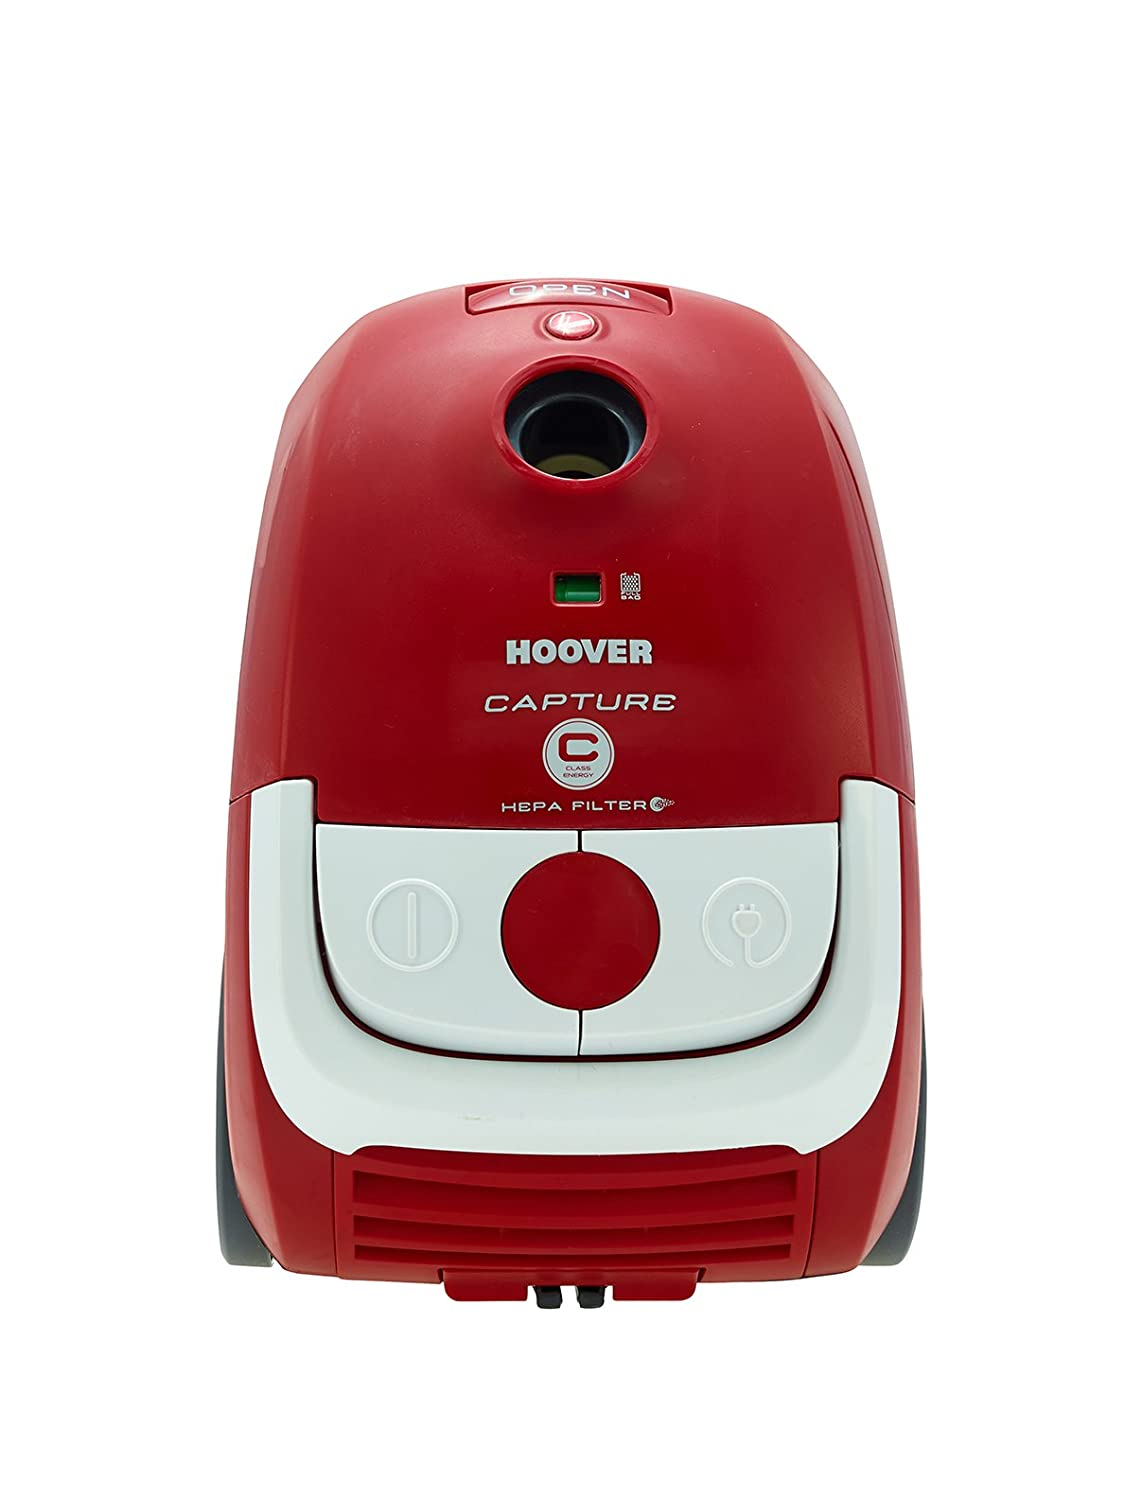 Hoover Capture Cylinder Vacuum Cleaner, 2.3 L 700 W - Red and White [Energy Class C] CP71_CP01001 / 39001183